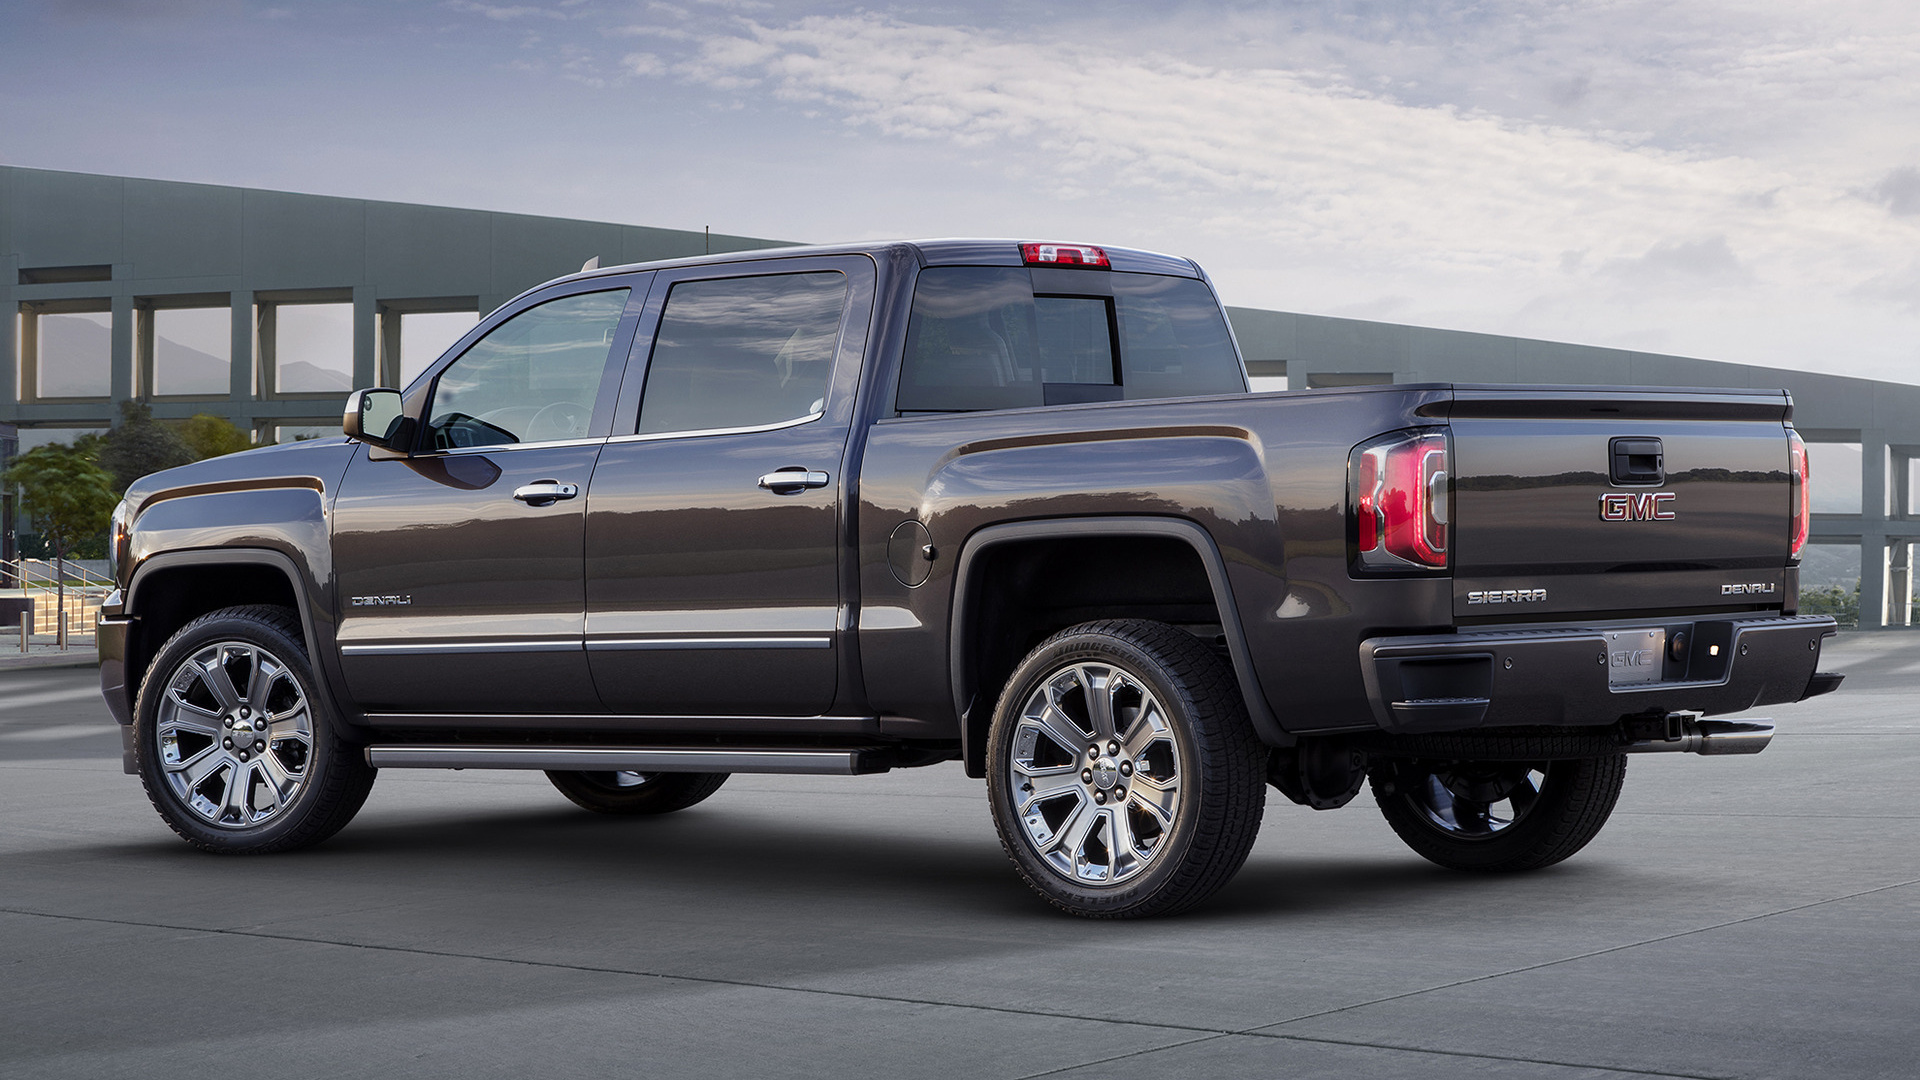 2017 GMC Sierra 1500 Denali Ultimate Crew Cab - Wallpapers ...